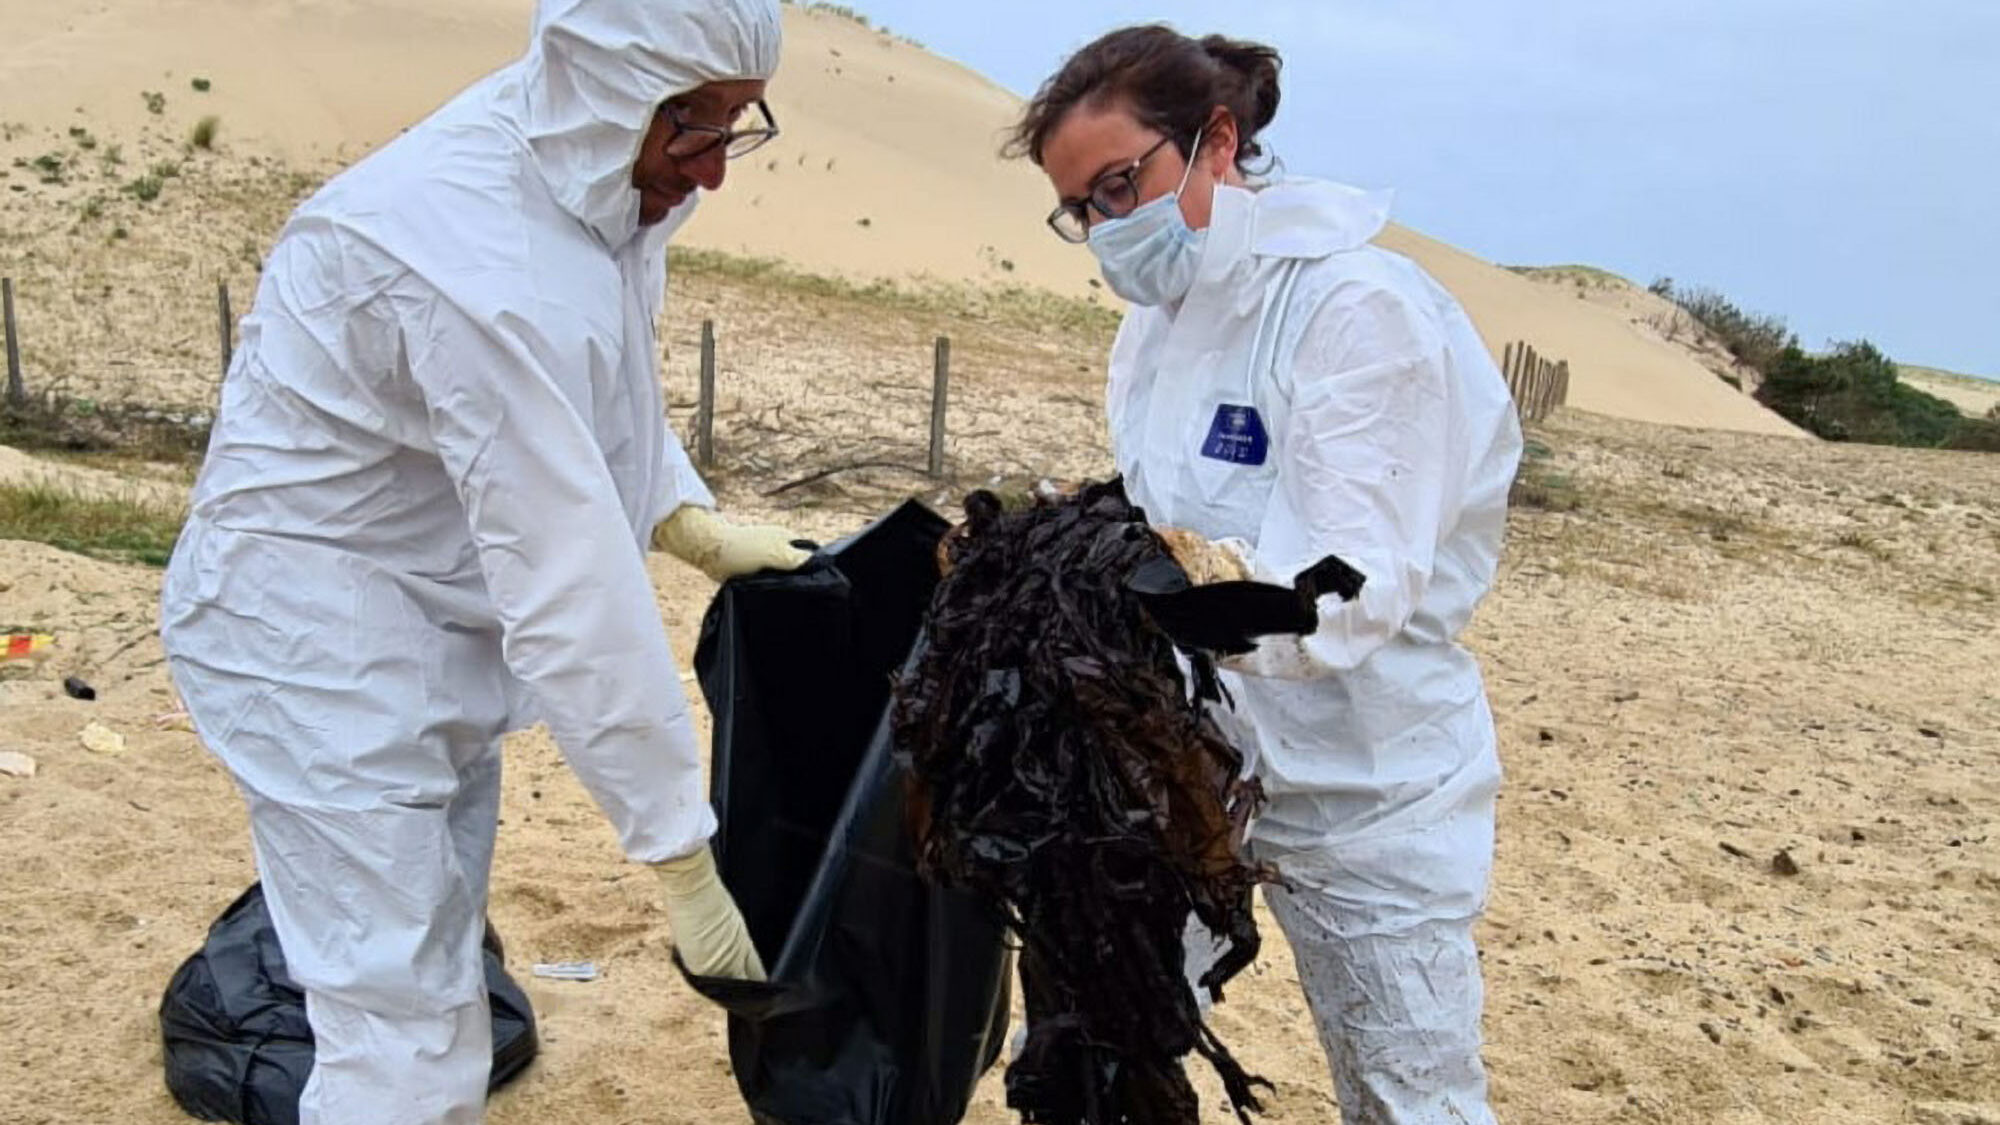 Beached Whale Ate 35 Pounds Of Chip Packets And Plastic Bags Before Death